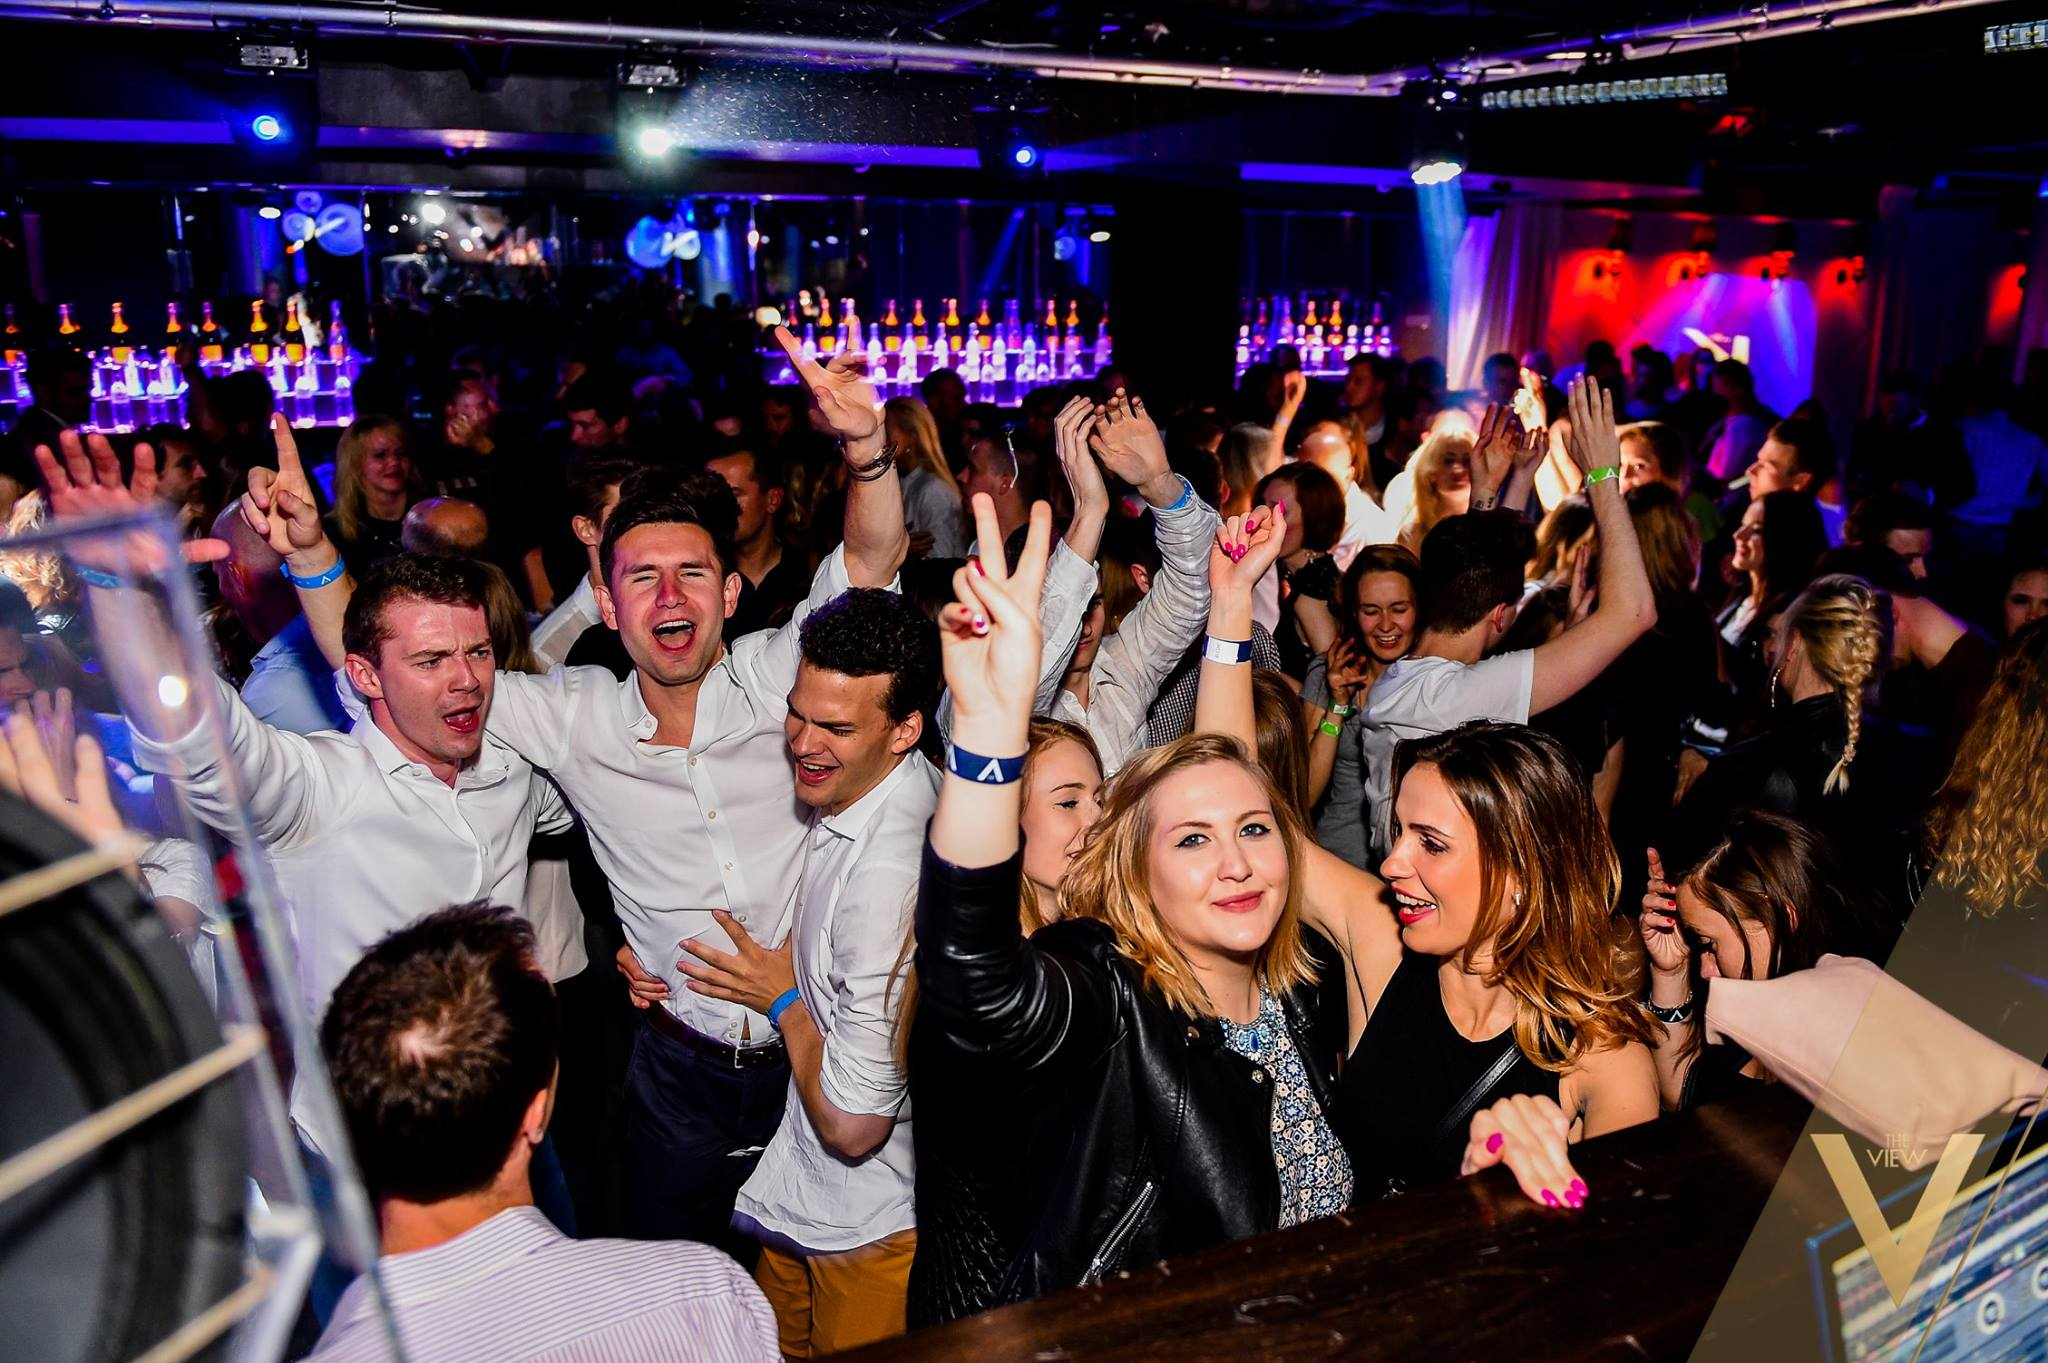 Top 10 Dance Clubs in PL - Poland In Your Pocket Blog